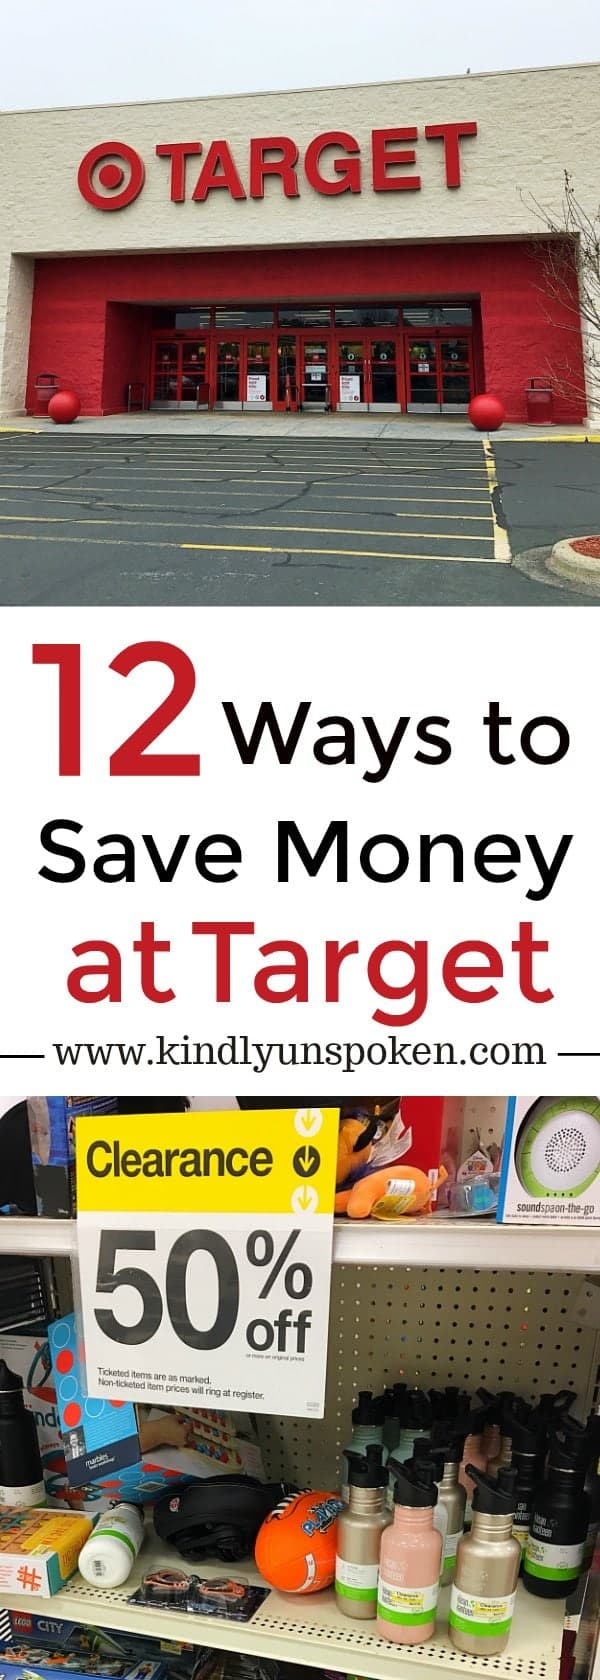 12 Ways to Save More Money at Target- Ever wanted to know how to save more money when shopping at Target? Today I'm sharing 12 Secrets On How to Save More Money at Target and my best kept tips and tricks on how to score the absolute best deals!